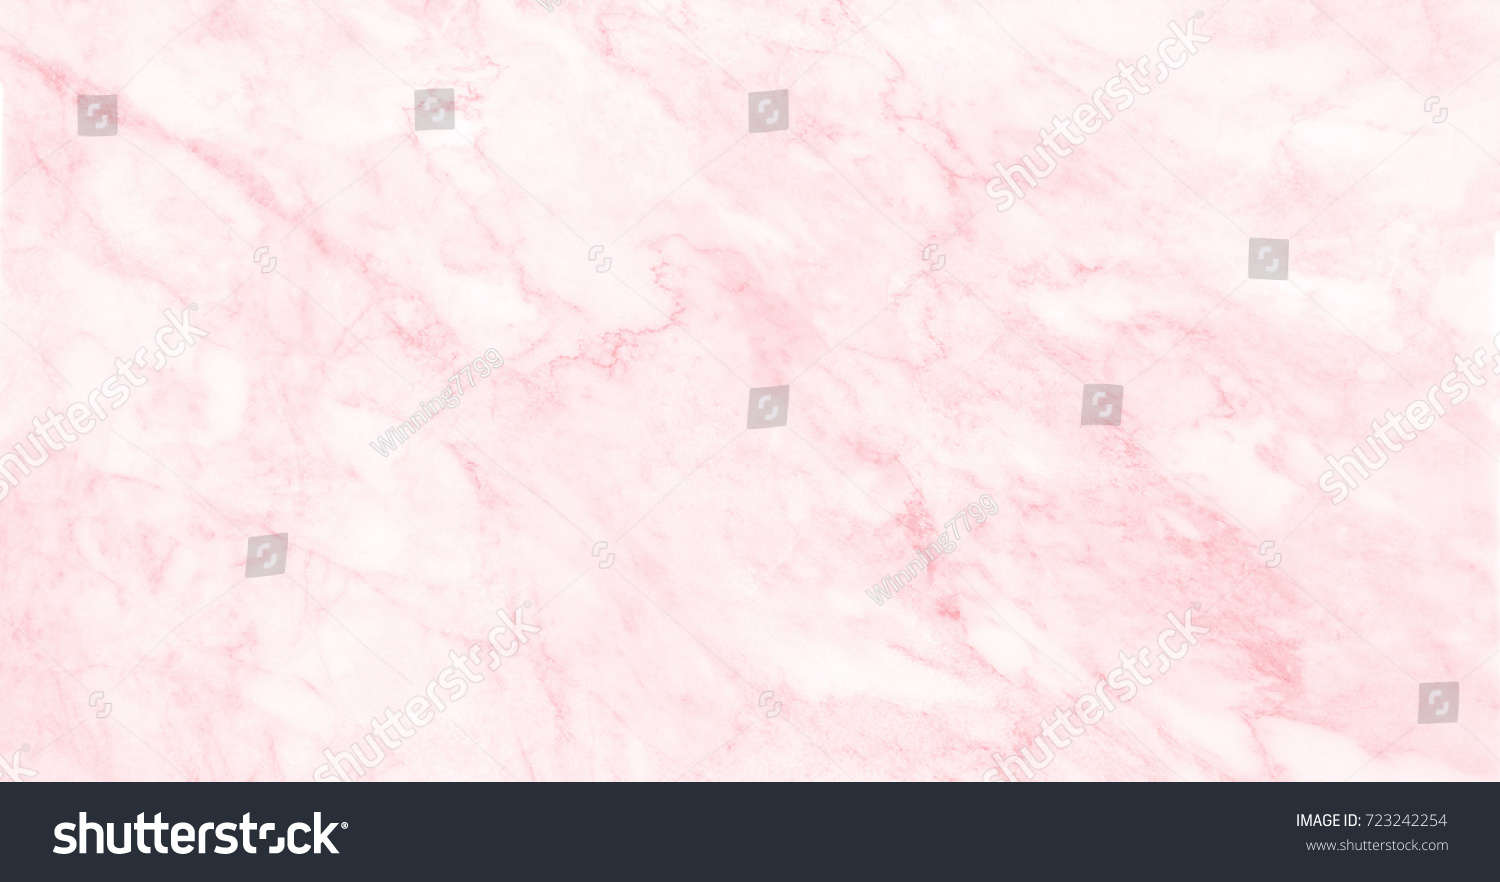 Pink marble texture background, abstract marble texture (natural patterns) for design. #723242254